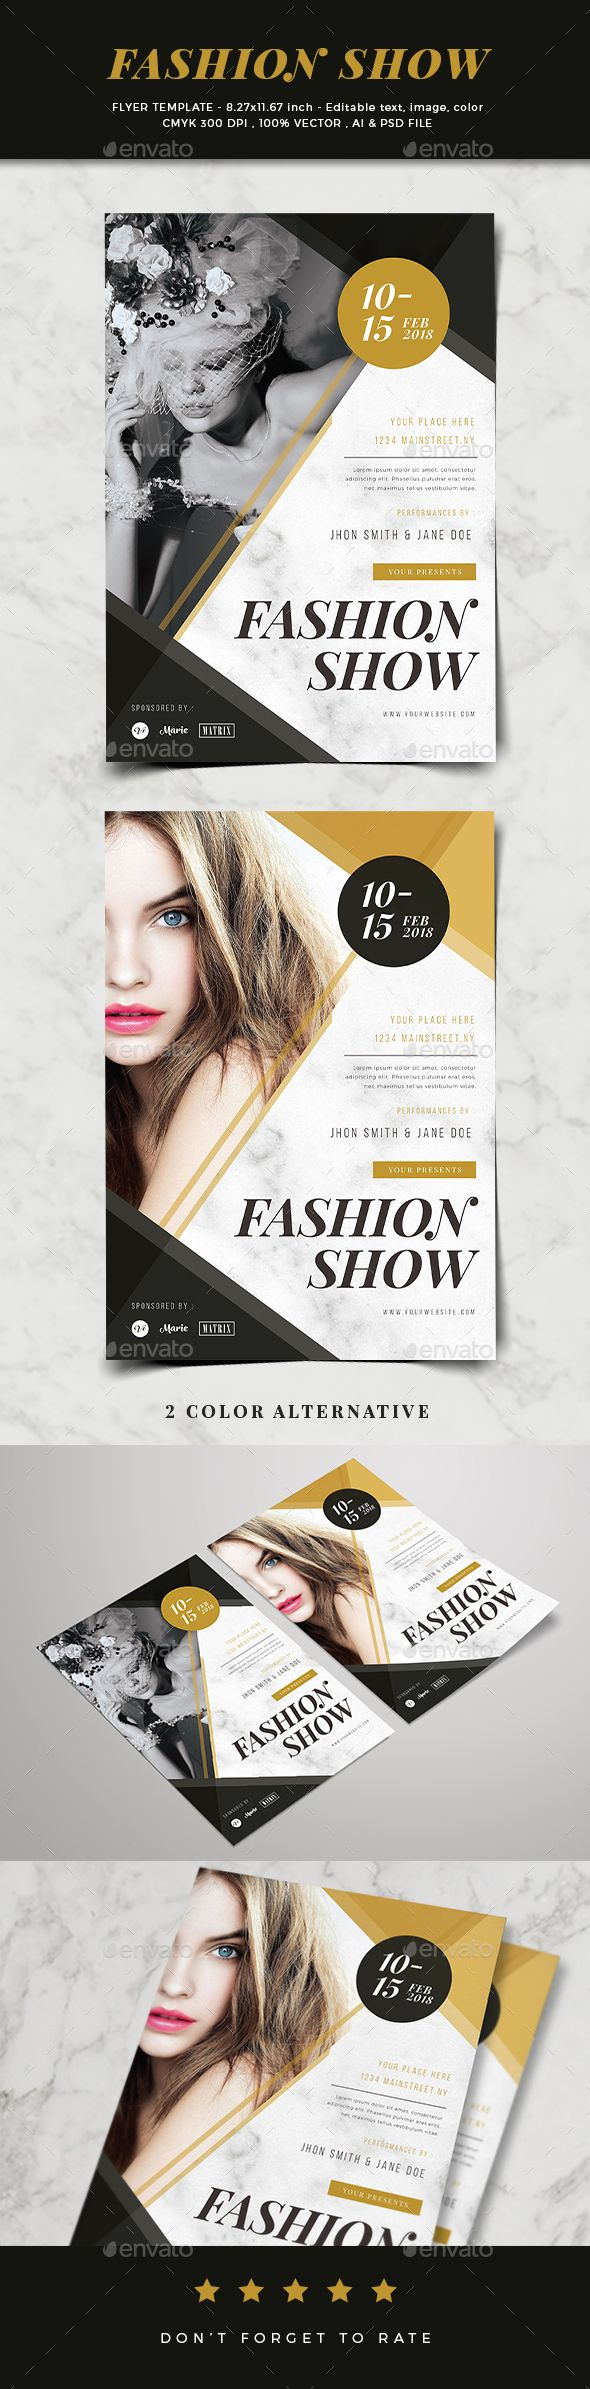 Fashion show flyer templates 29